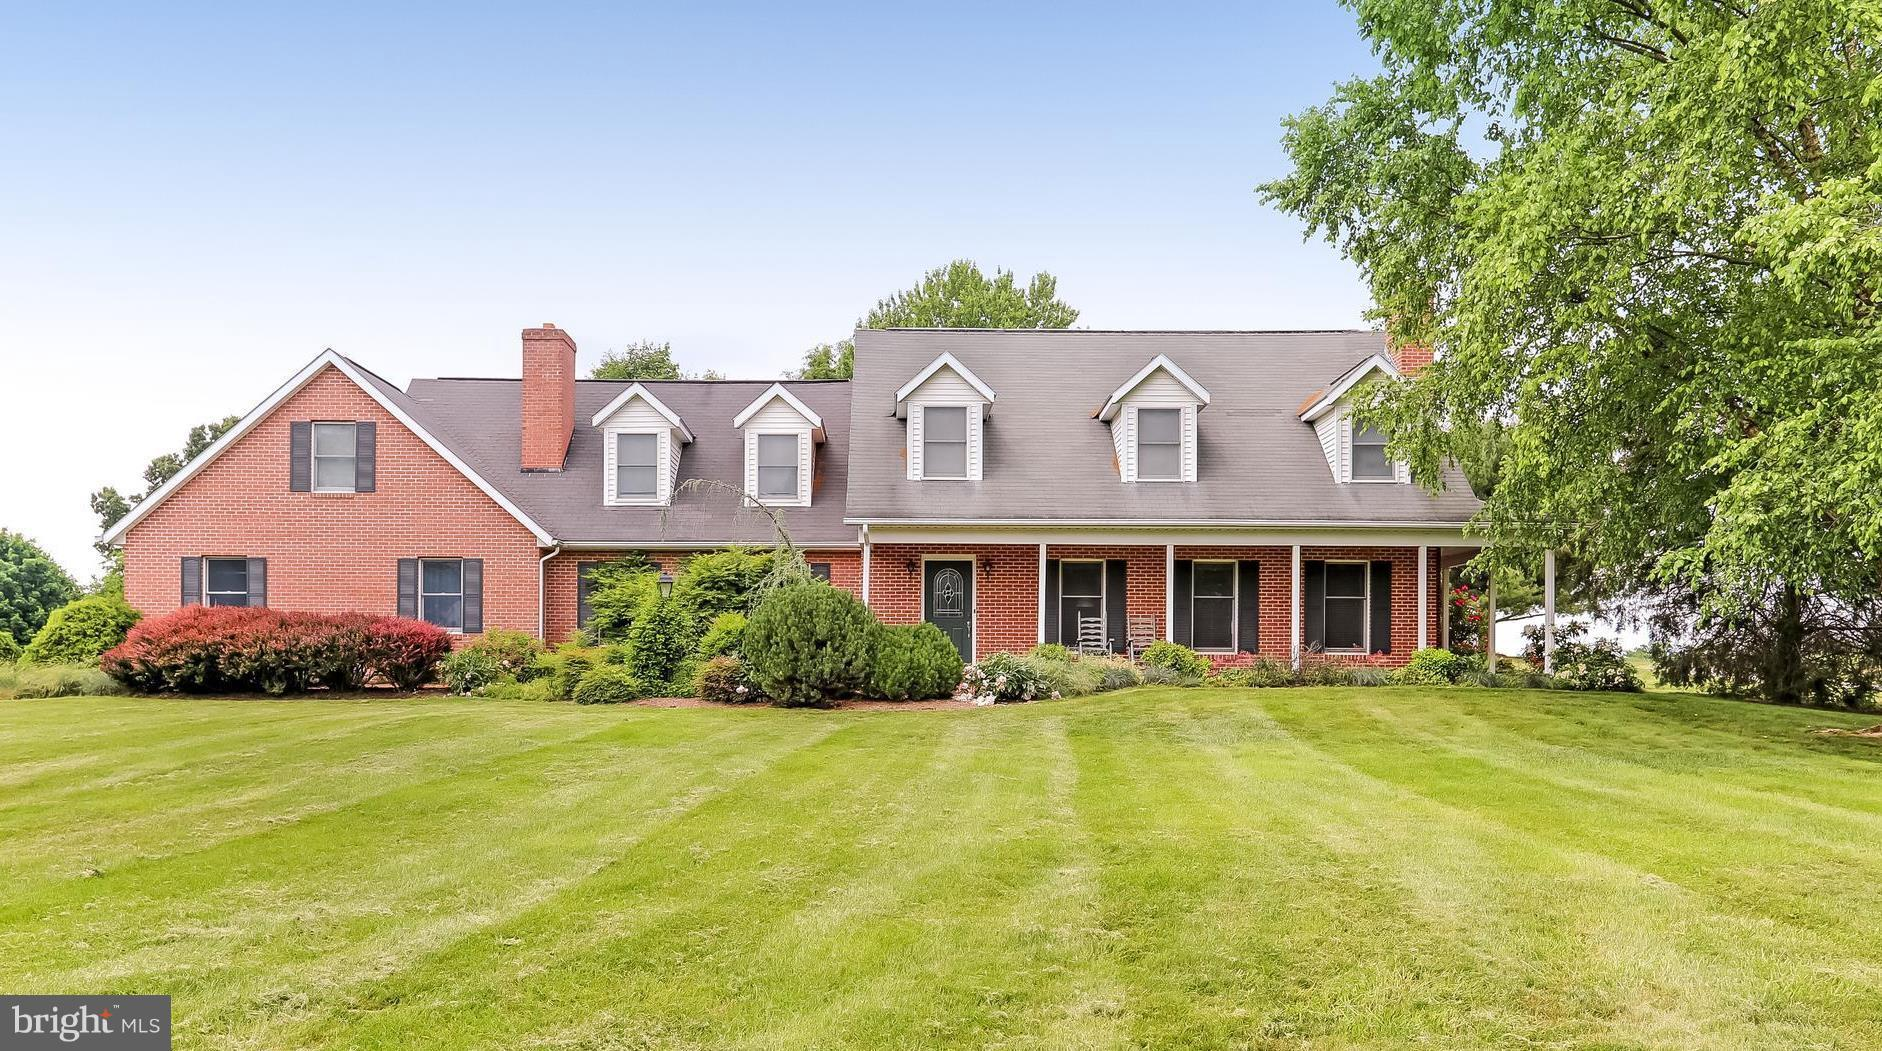 22910 WELTY CHURCH ROAD, SMITHSBURG, MD 21783